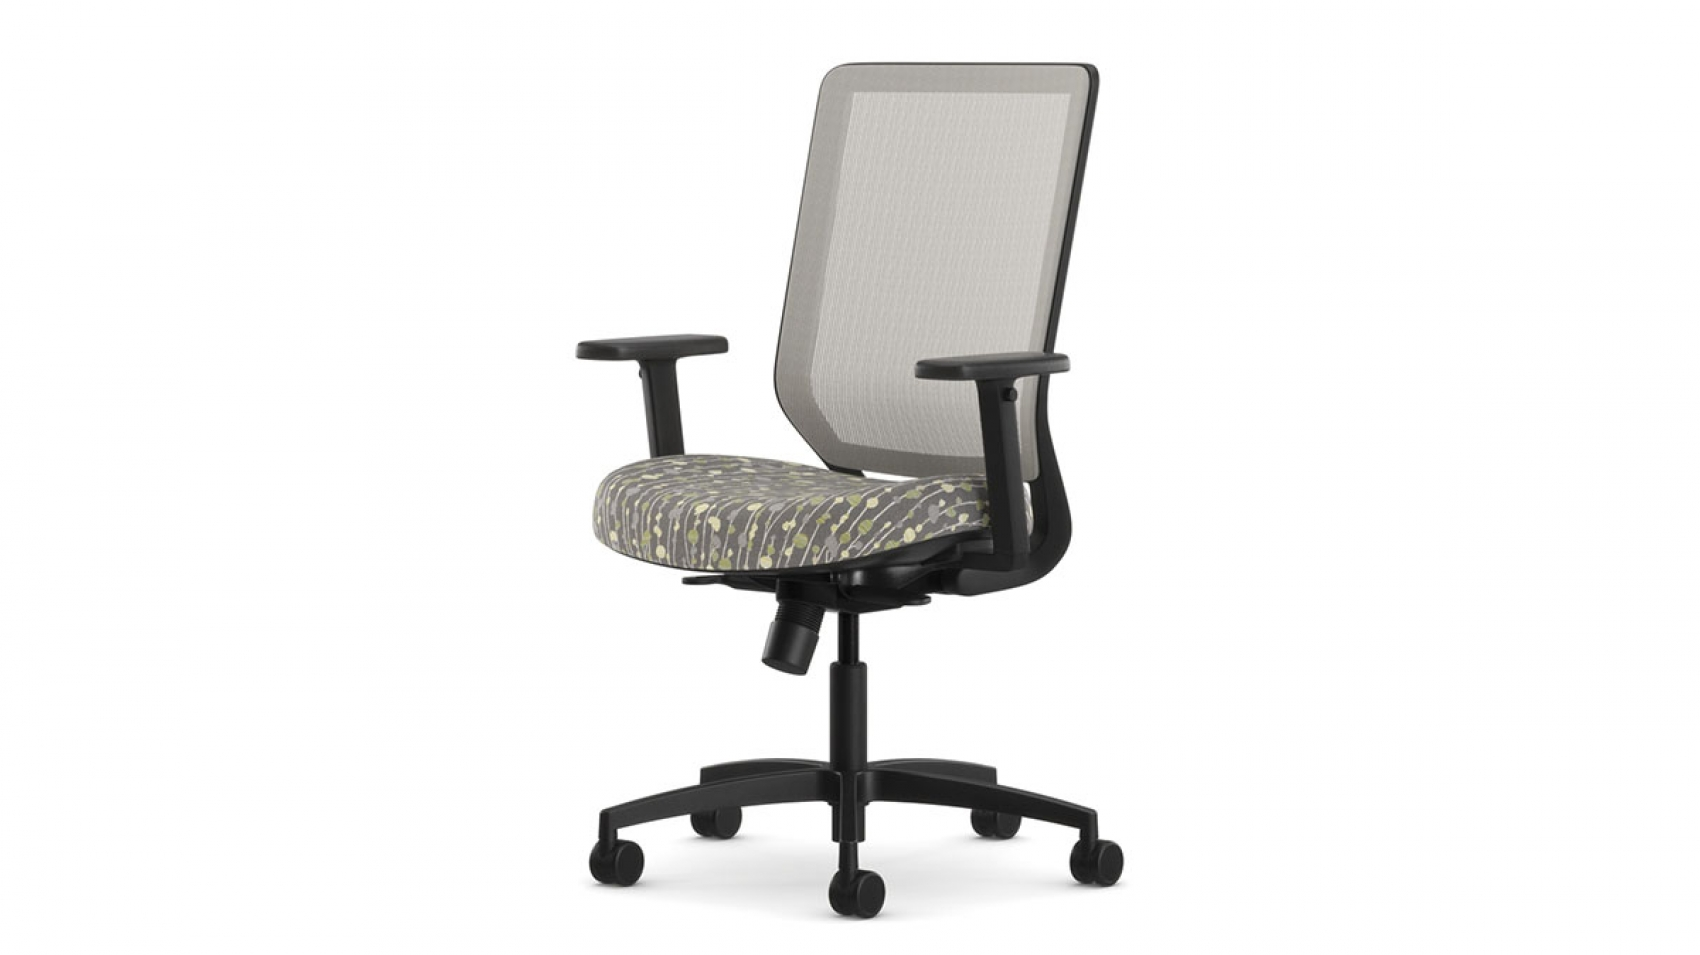 Highmark genus Office Chair